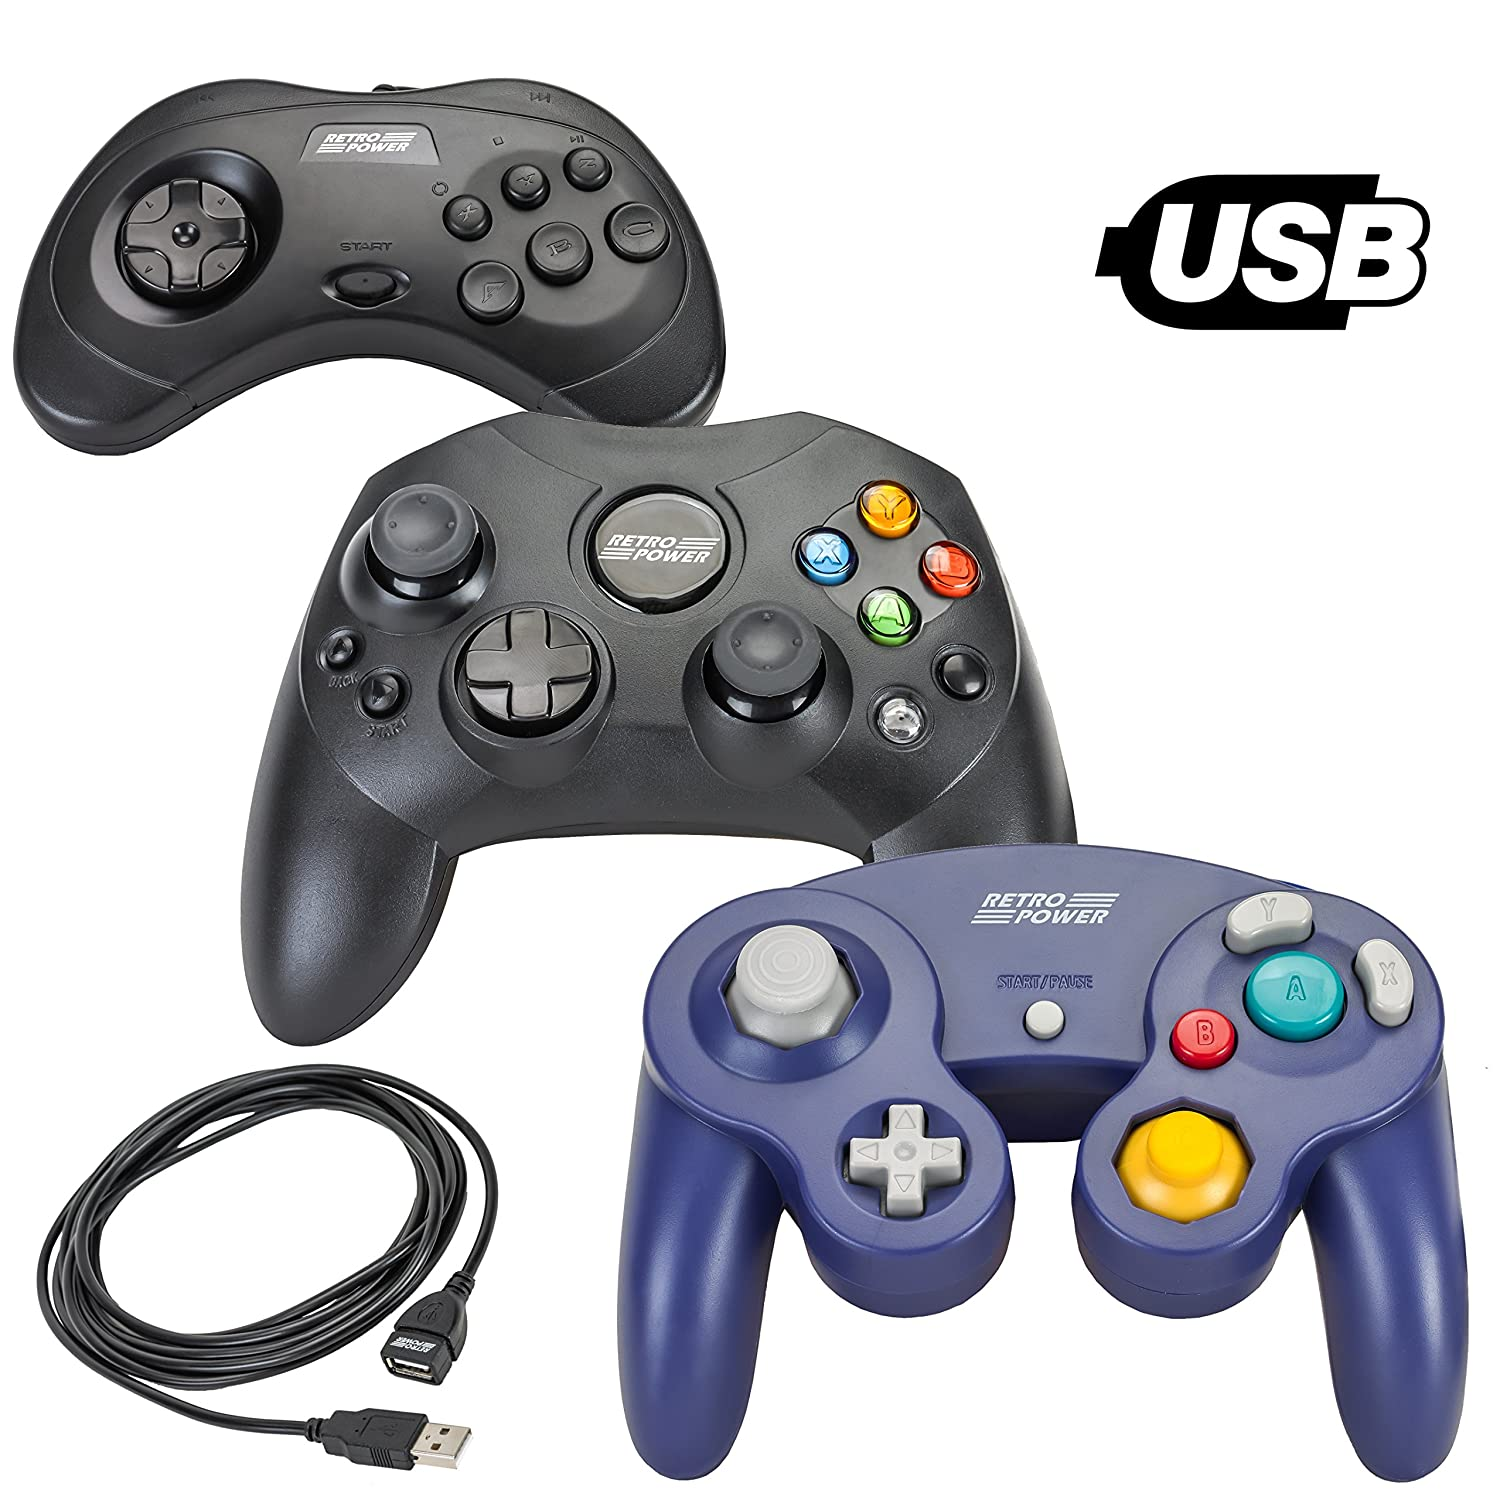 Retro Power 3 USB Classic Controllers - Gamecube, Sega Saturn, Xbox-Styled  (Original), with 10' USB Extension Cable!